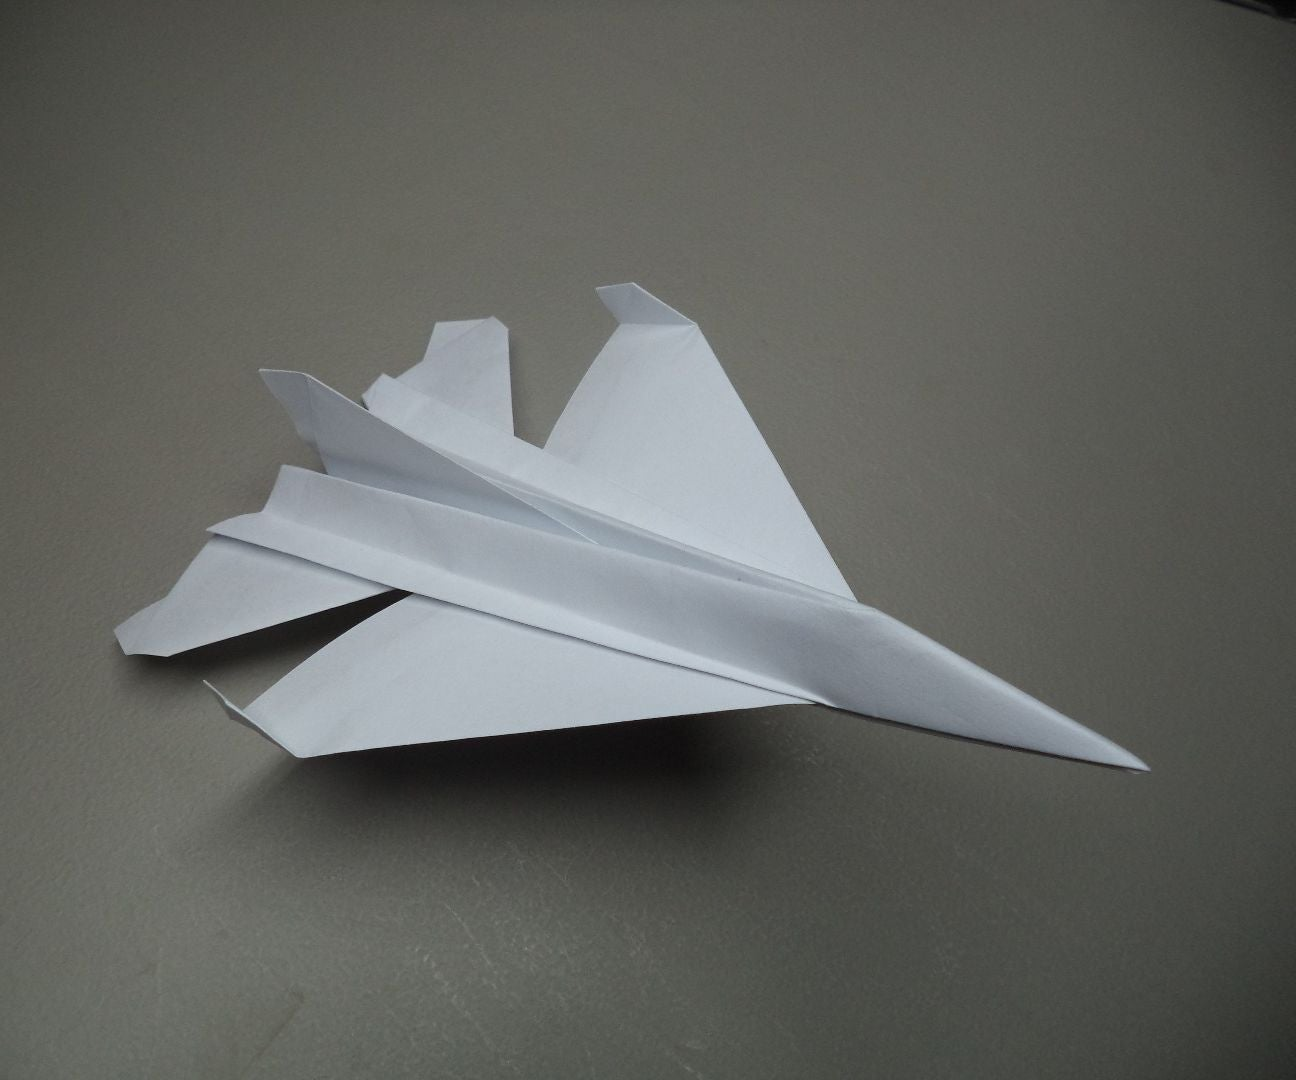 How To Fold An Origami F-16 Plane: 18 Steps (with Pictures